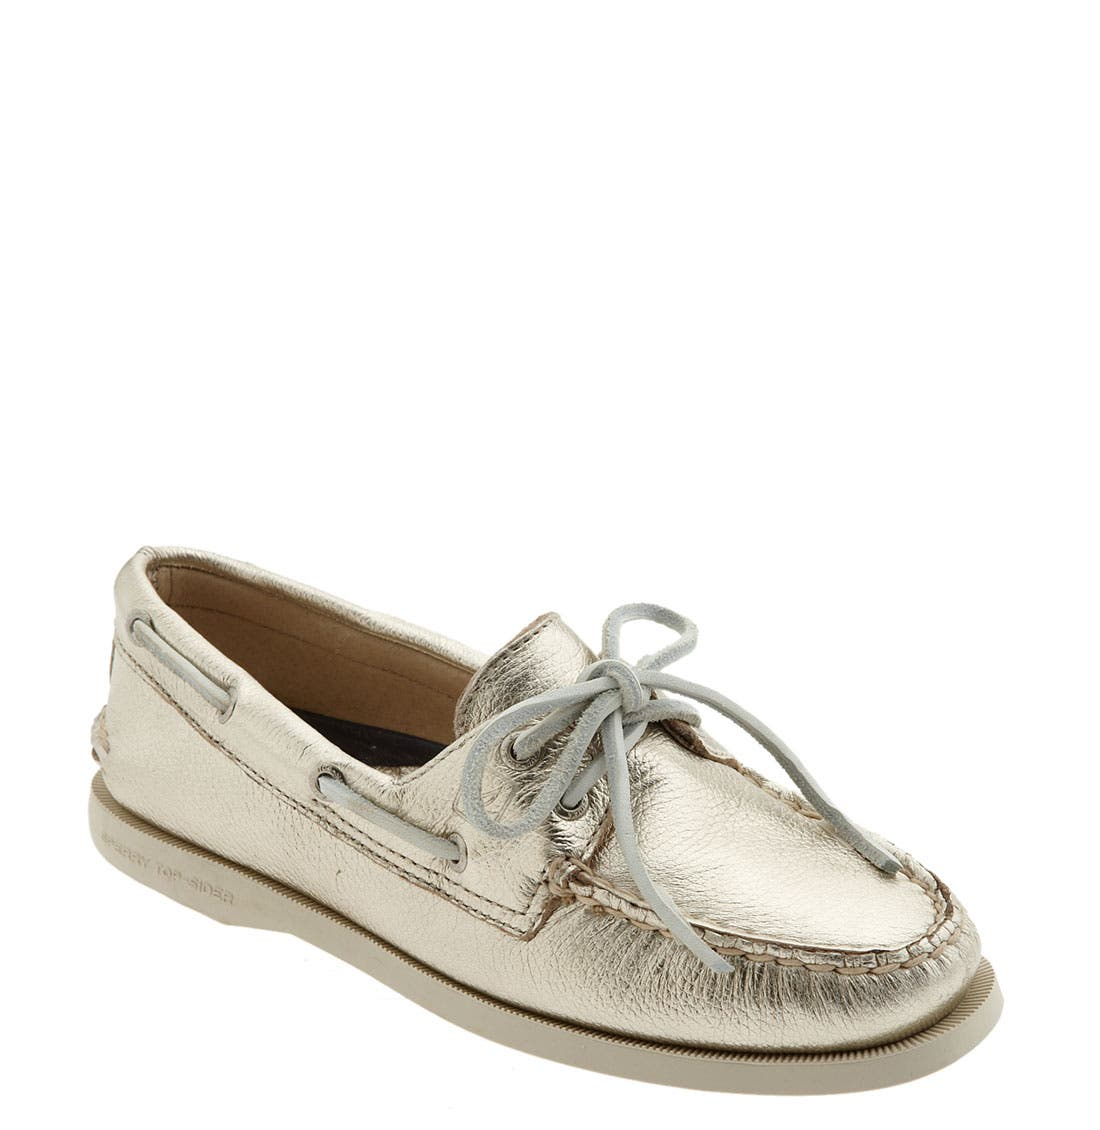 Main Image - Sperry 'Authentic Original' Boat Shoe (Women)